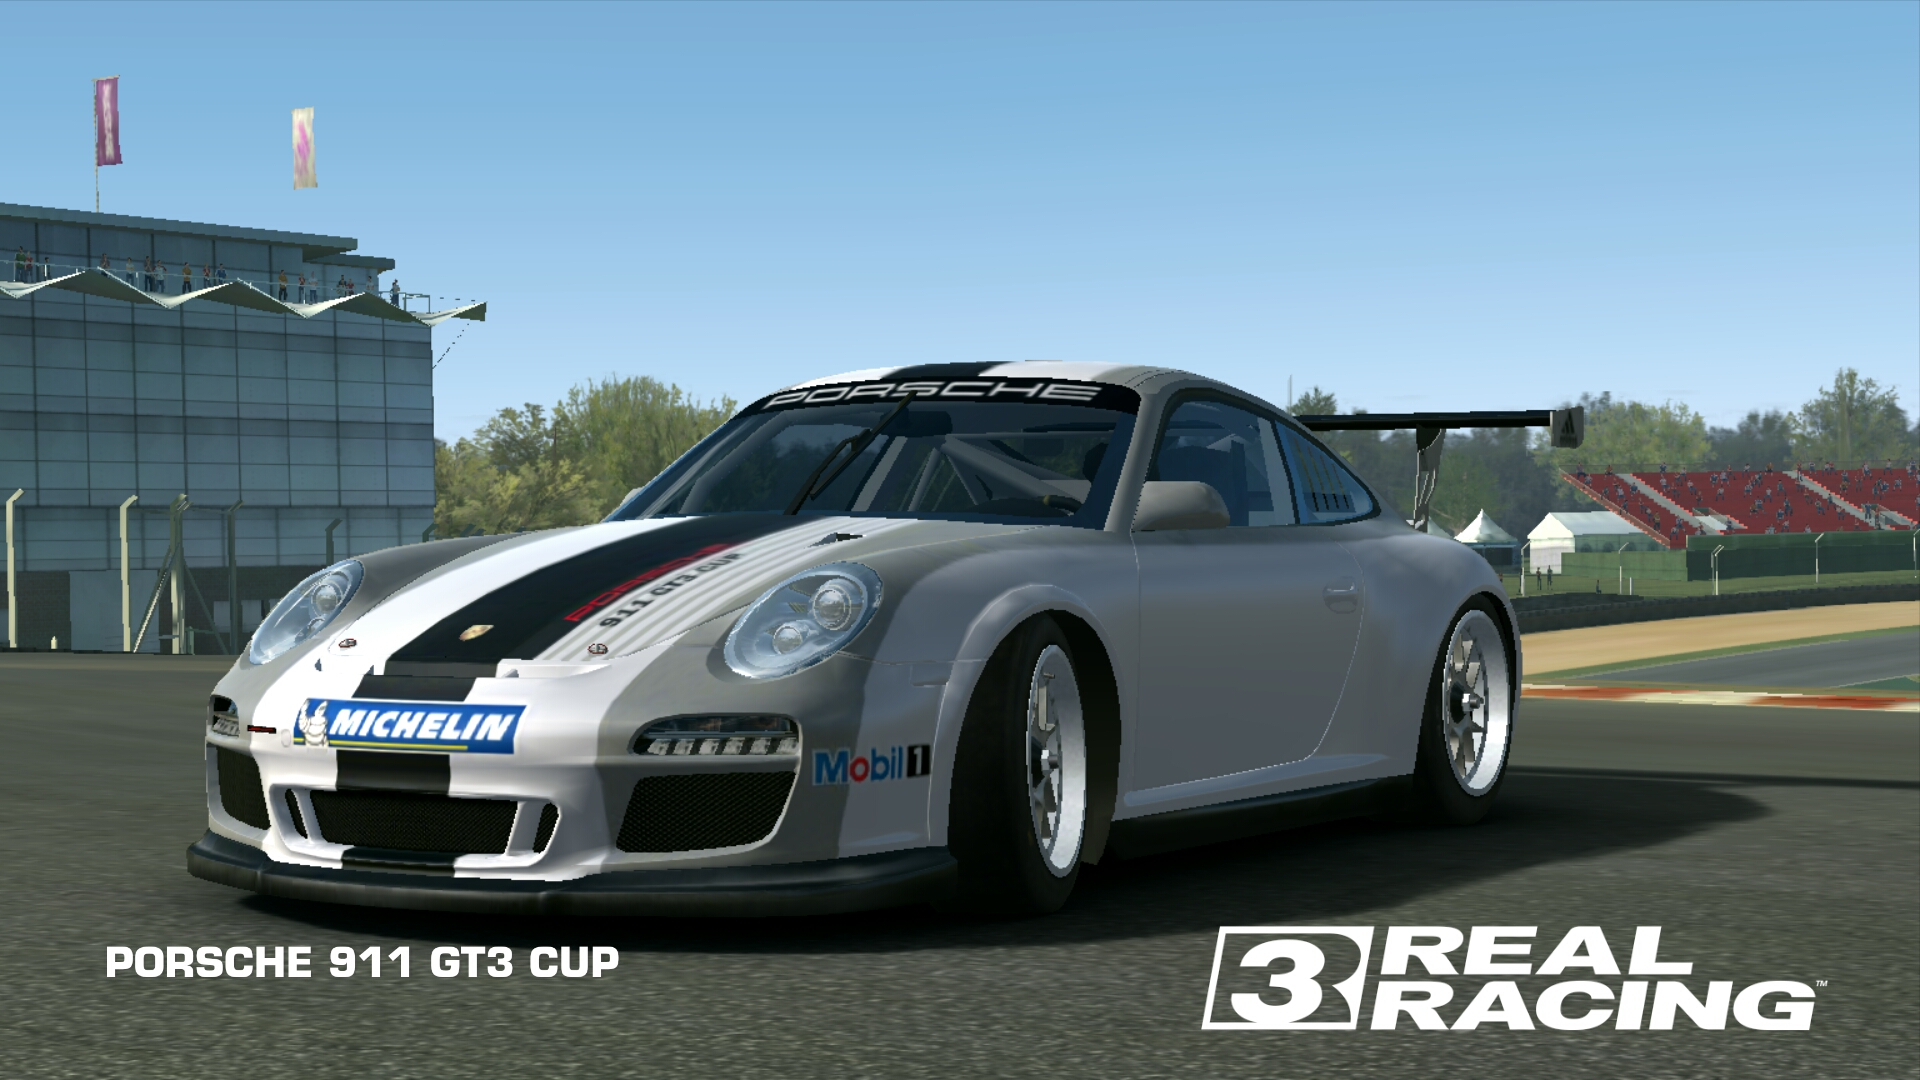 PORSCHE 911 GT3 CUP | Real Racing 3 Wiki | FANDOM powered by Wikia on porsche coloring pages, porsche and bugatti race, audi r8 race car template, dirt modified race car template, orange race car template, porsche boxster race car, dodge challenger race car template,